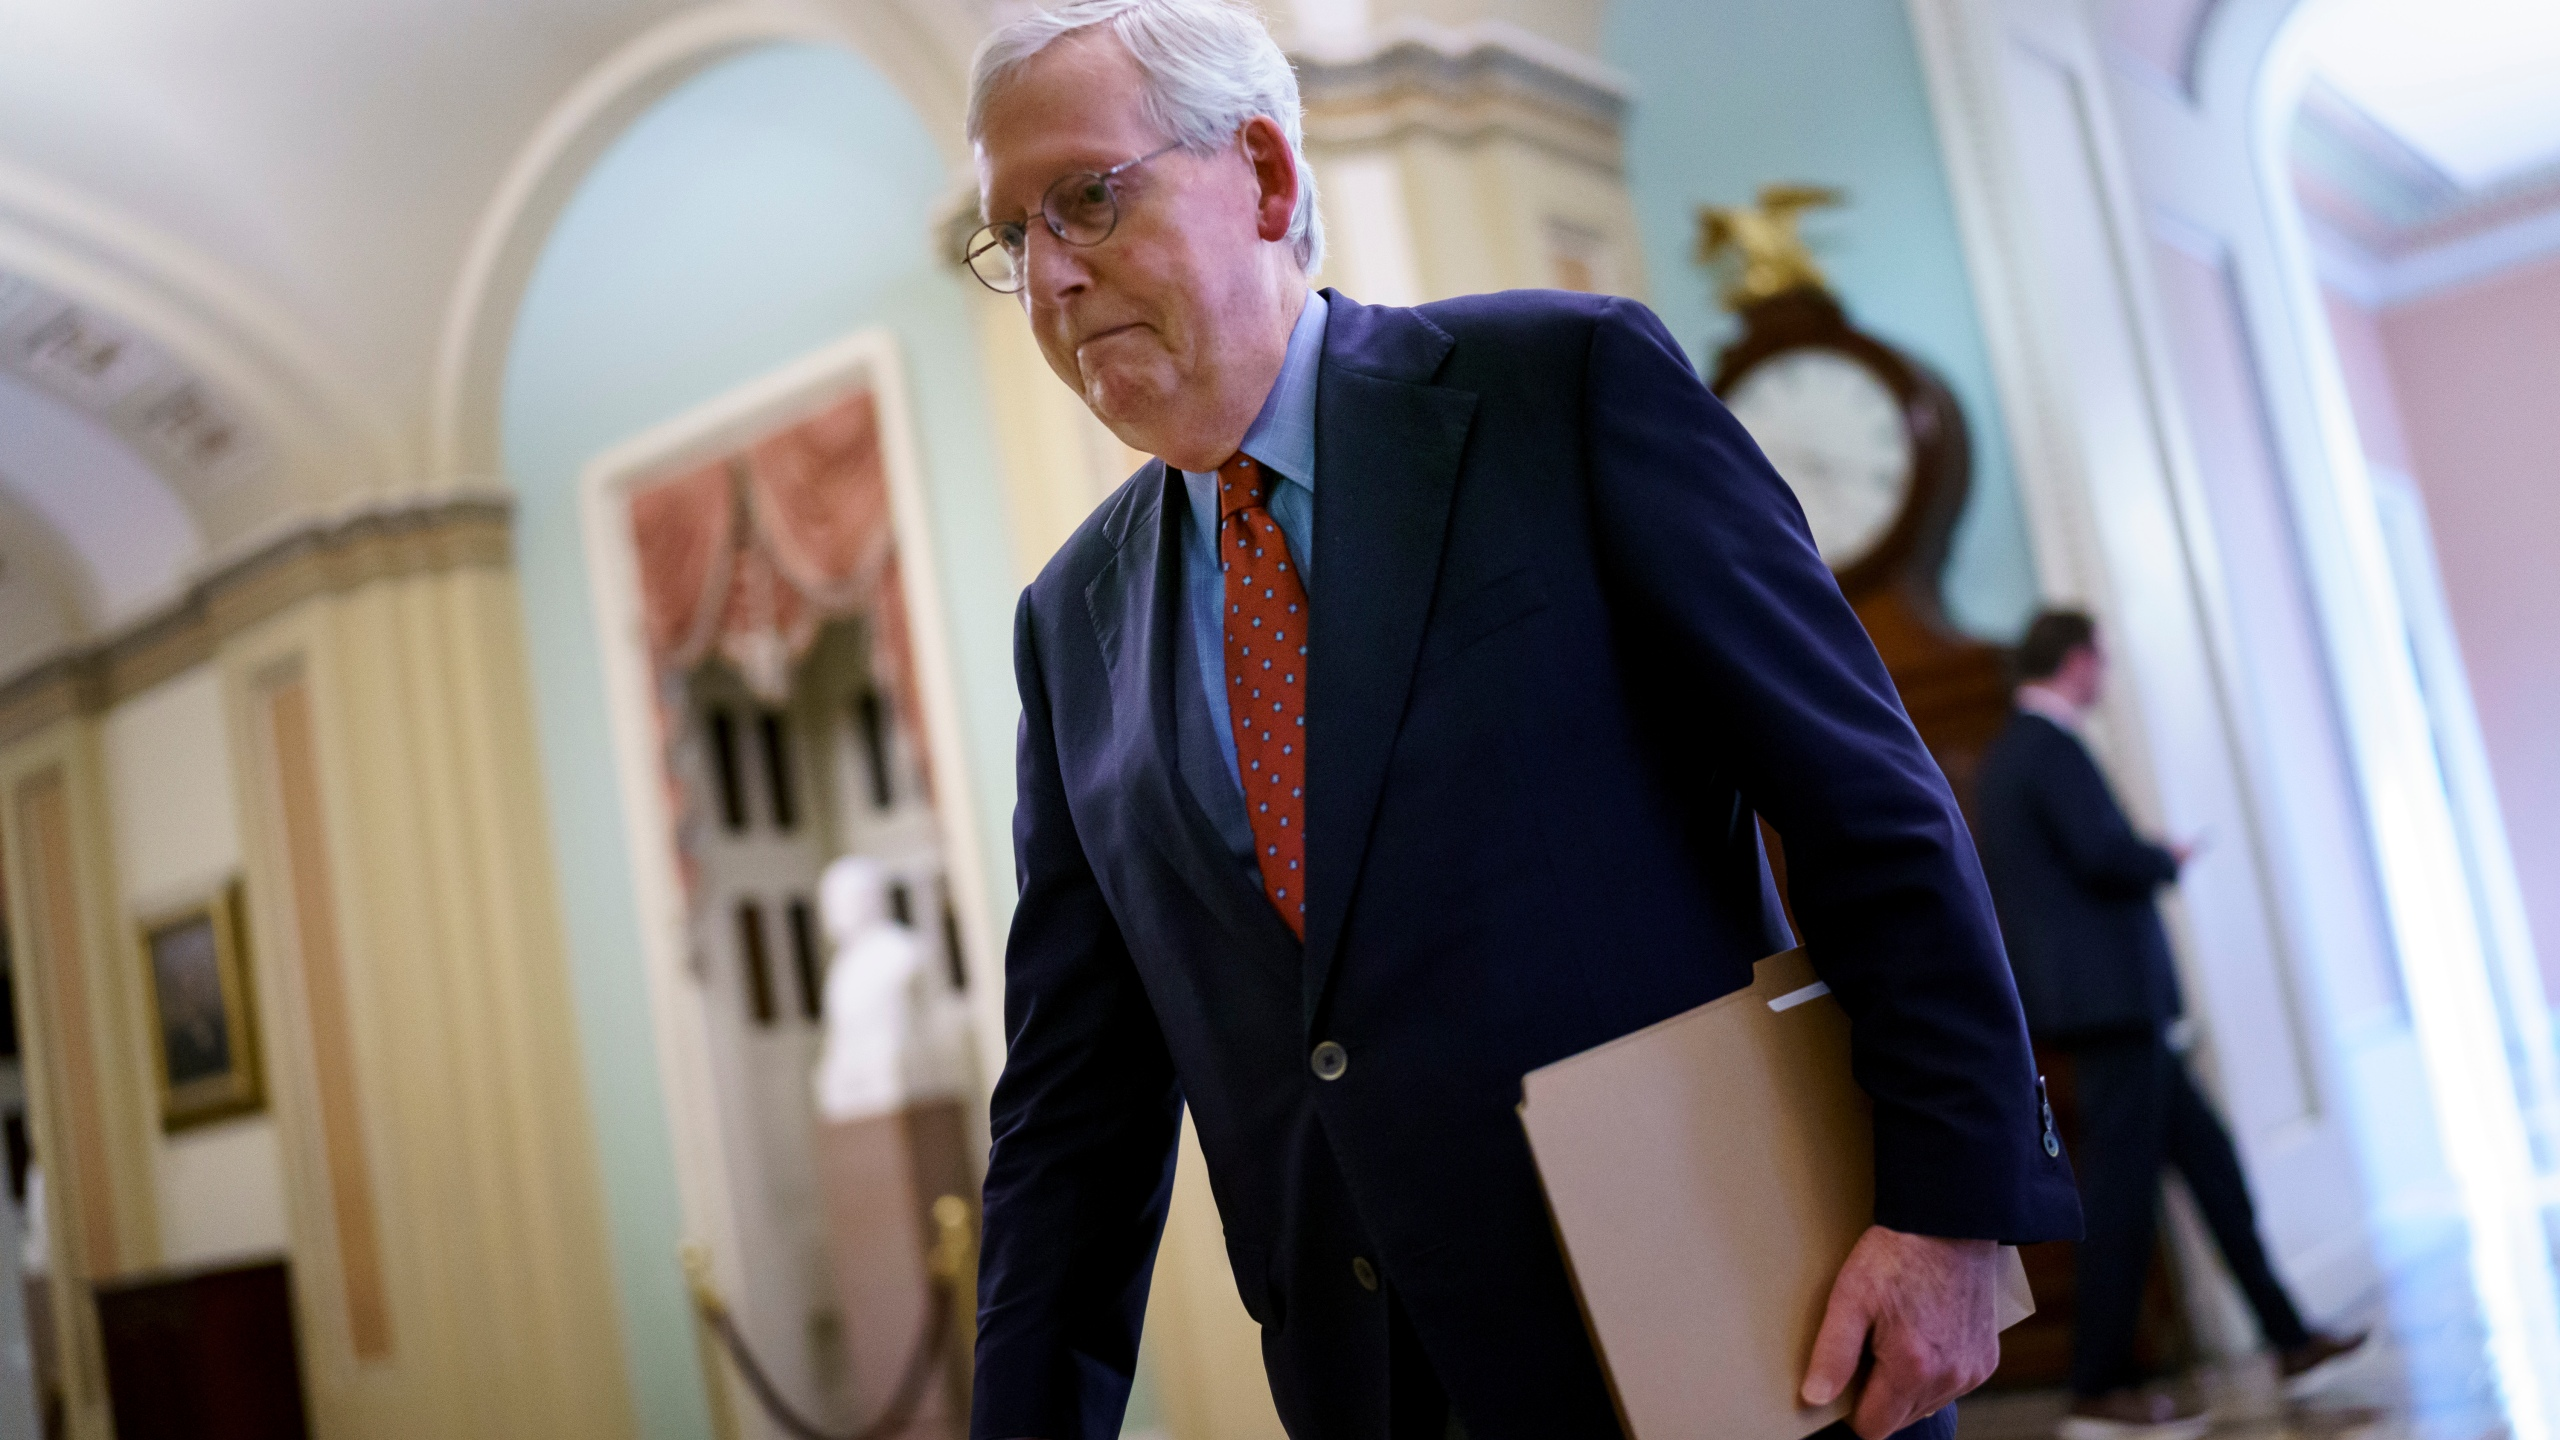 Senate Minority Leader Mitch McConnell, R-Ky., walks to the chamber for a test vote on a government spending bill at the Capitol in Washington on Sept. 27, 2021. (J. Scott Applewhite / Associated Press)